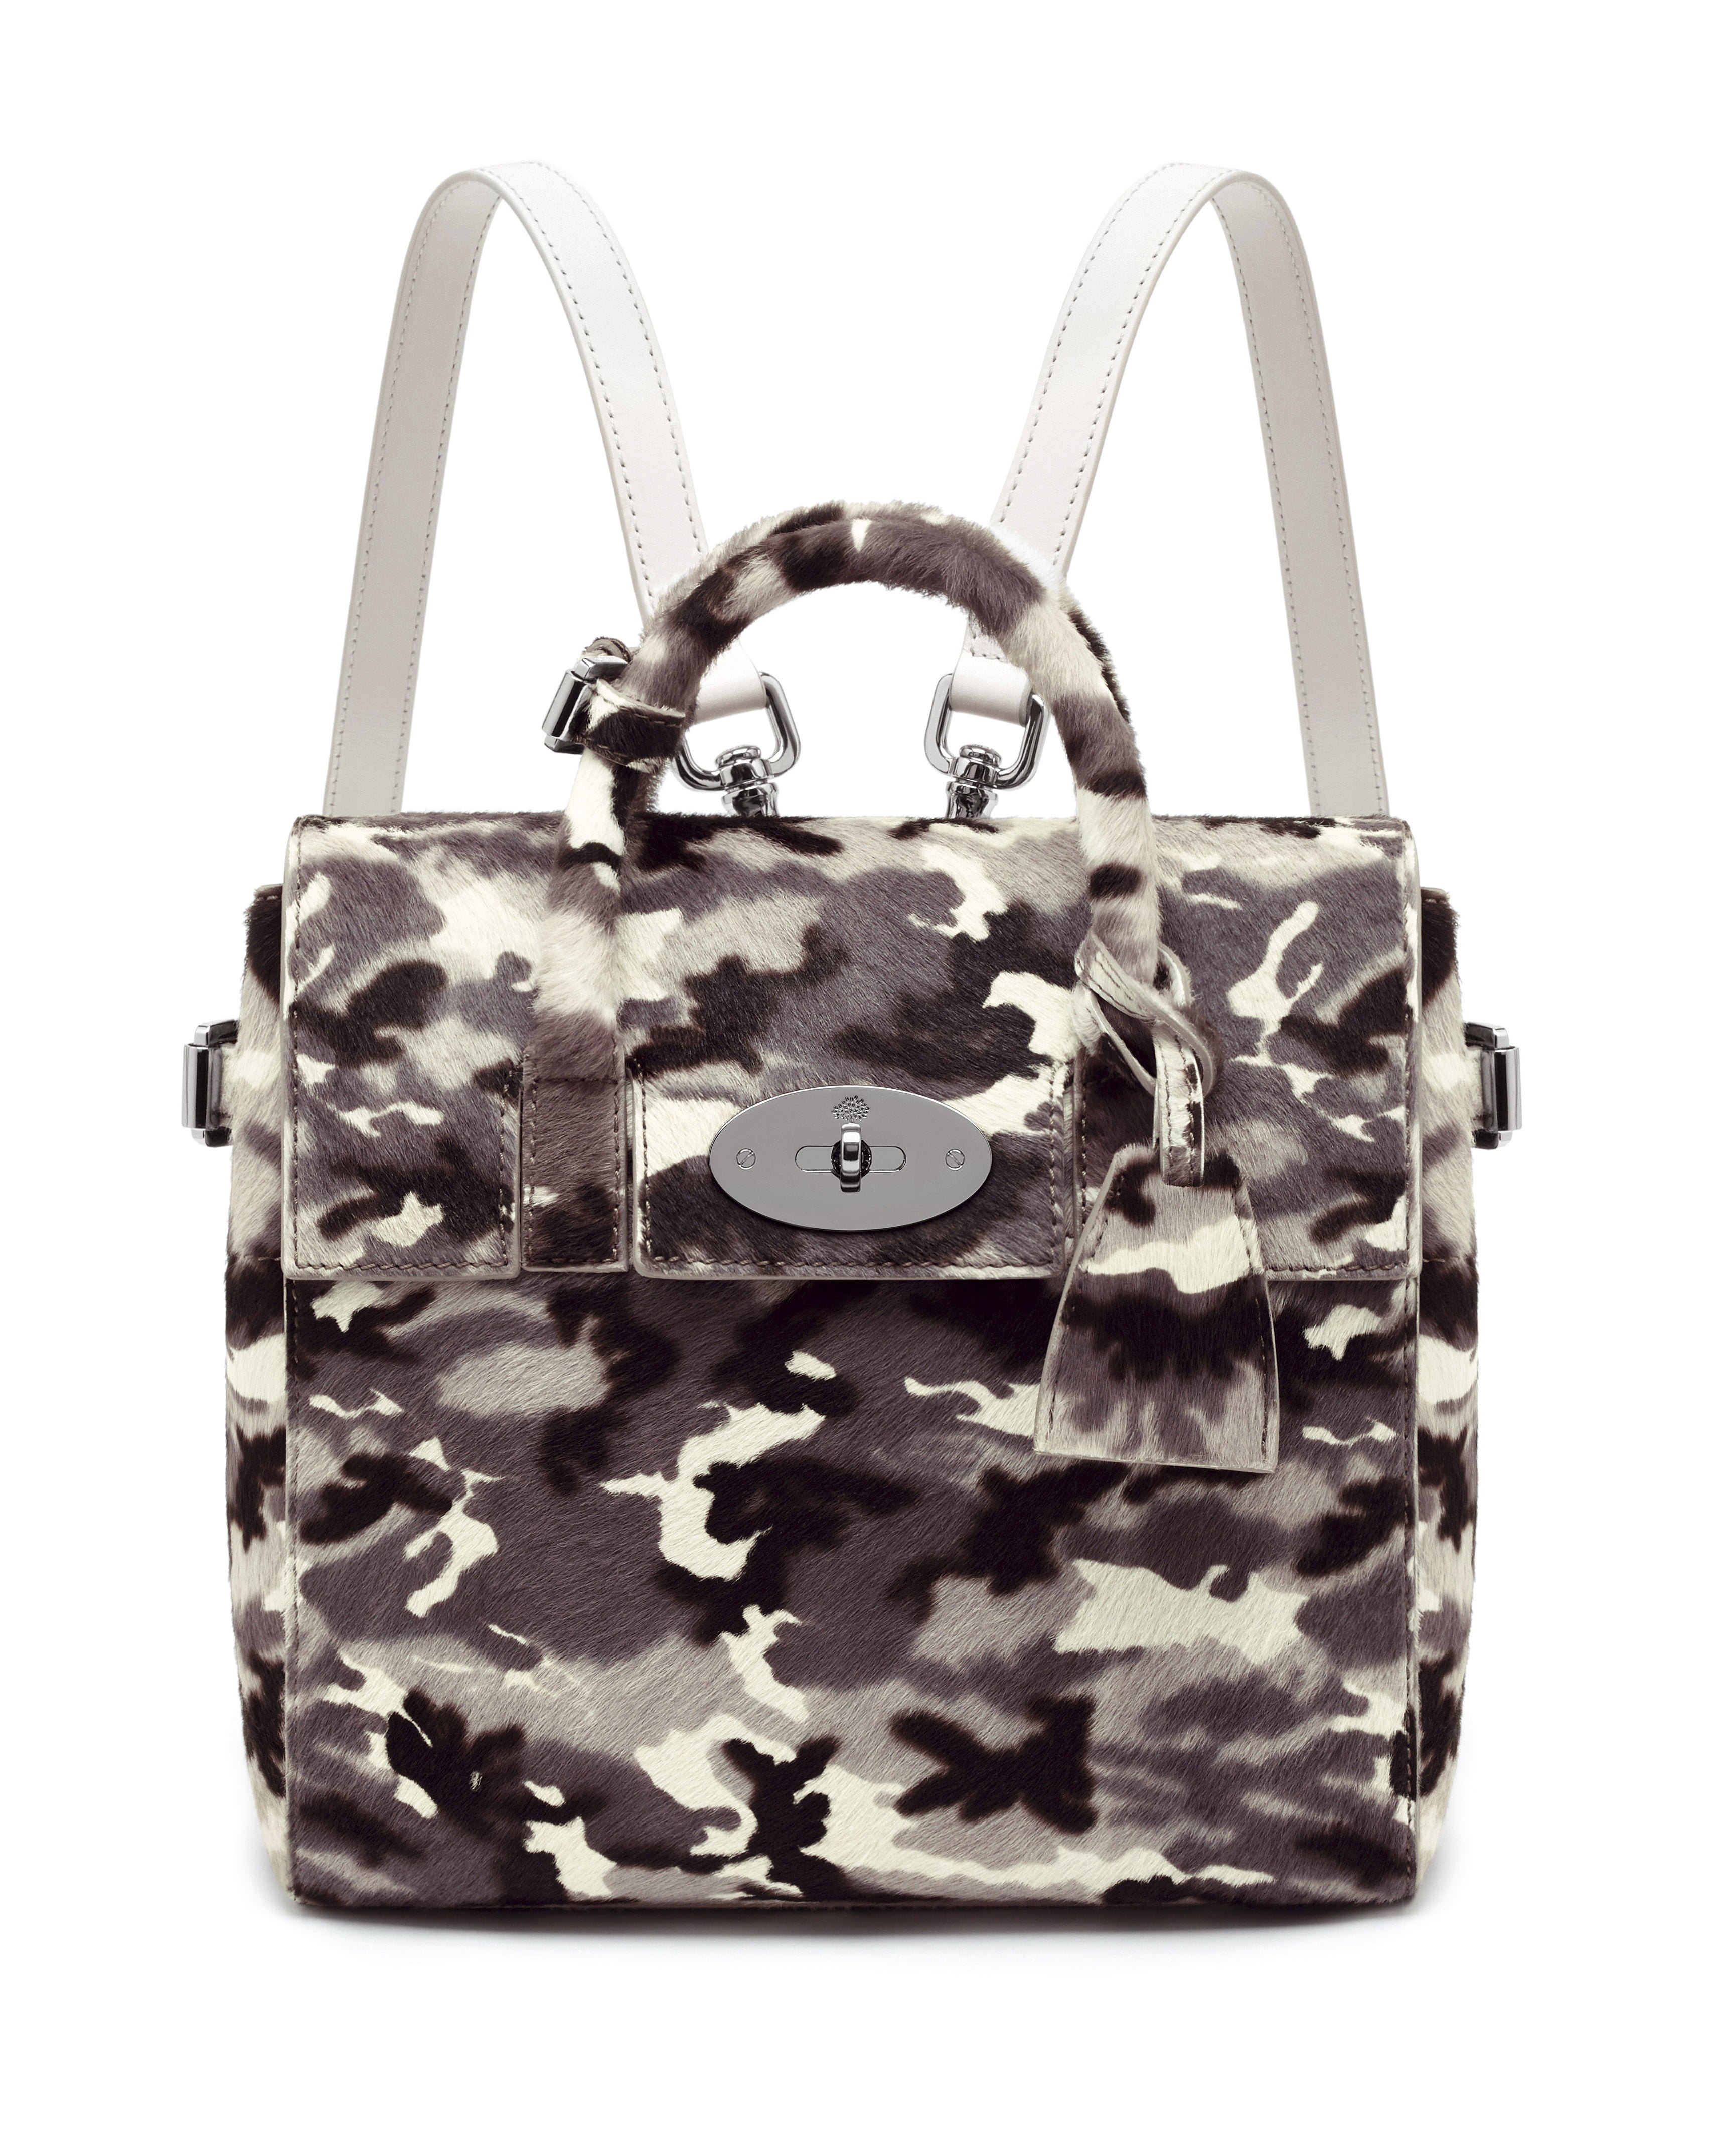 Mini Cara Delevingne Bag in Black-White Camo Haircalf